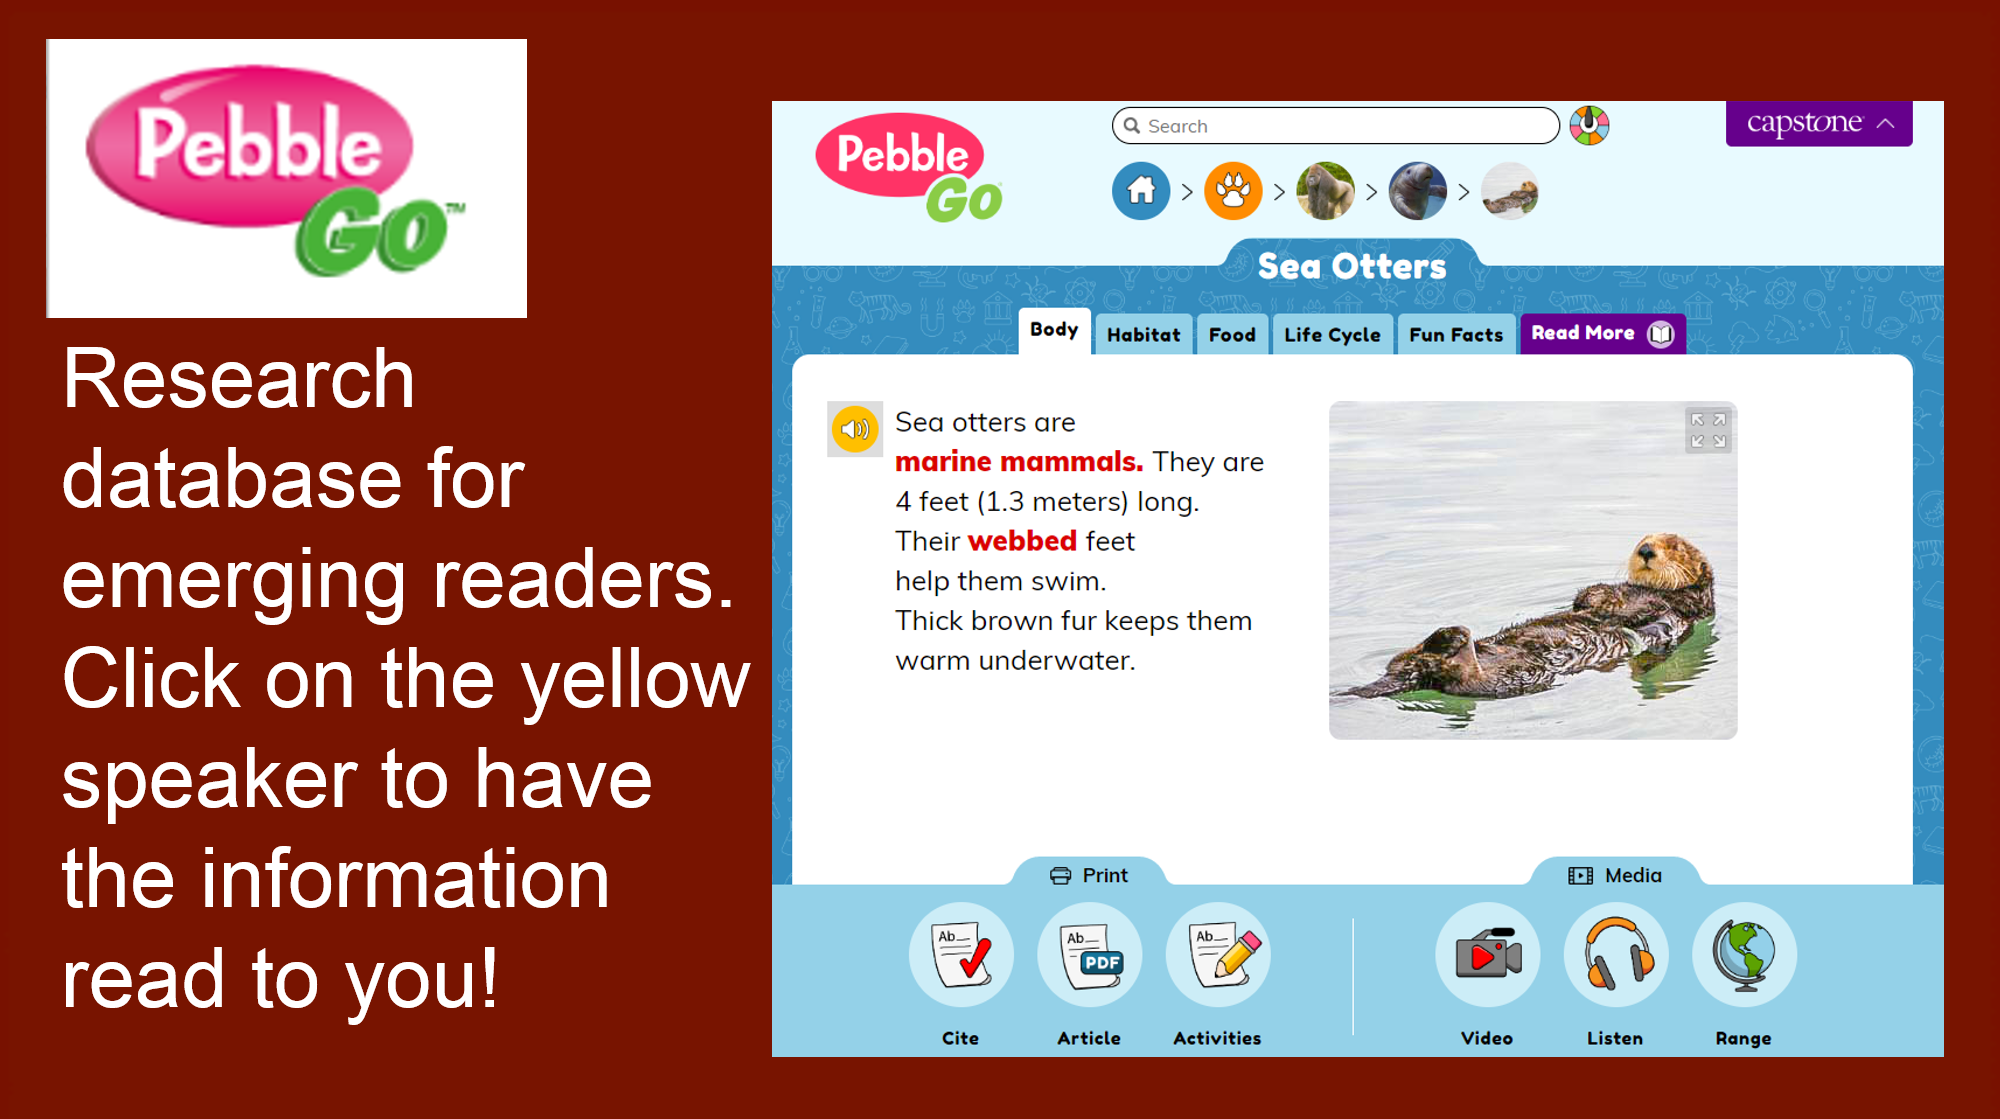 Research database for emerging readers. Click on the yellow speaker to have the information read to you!